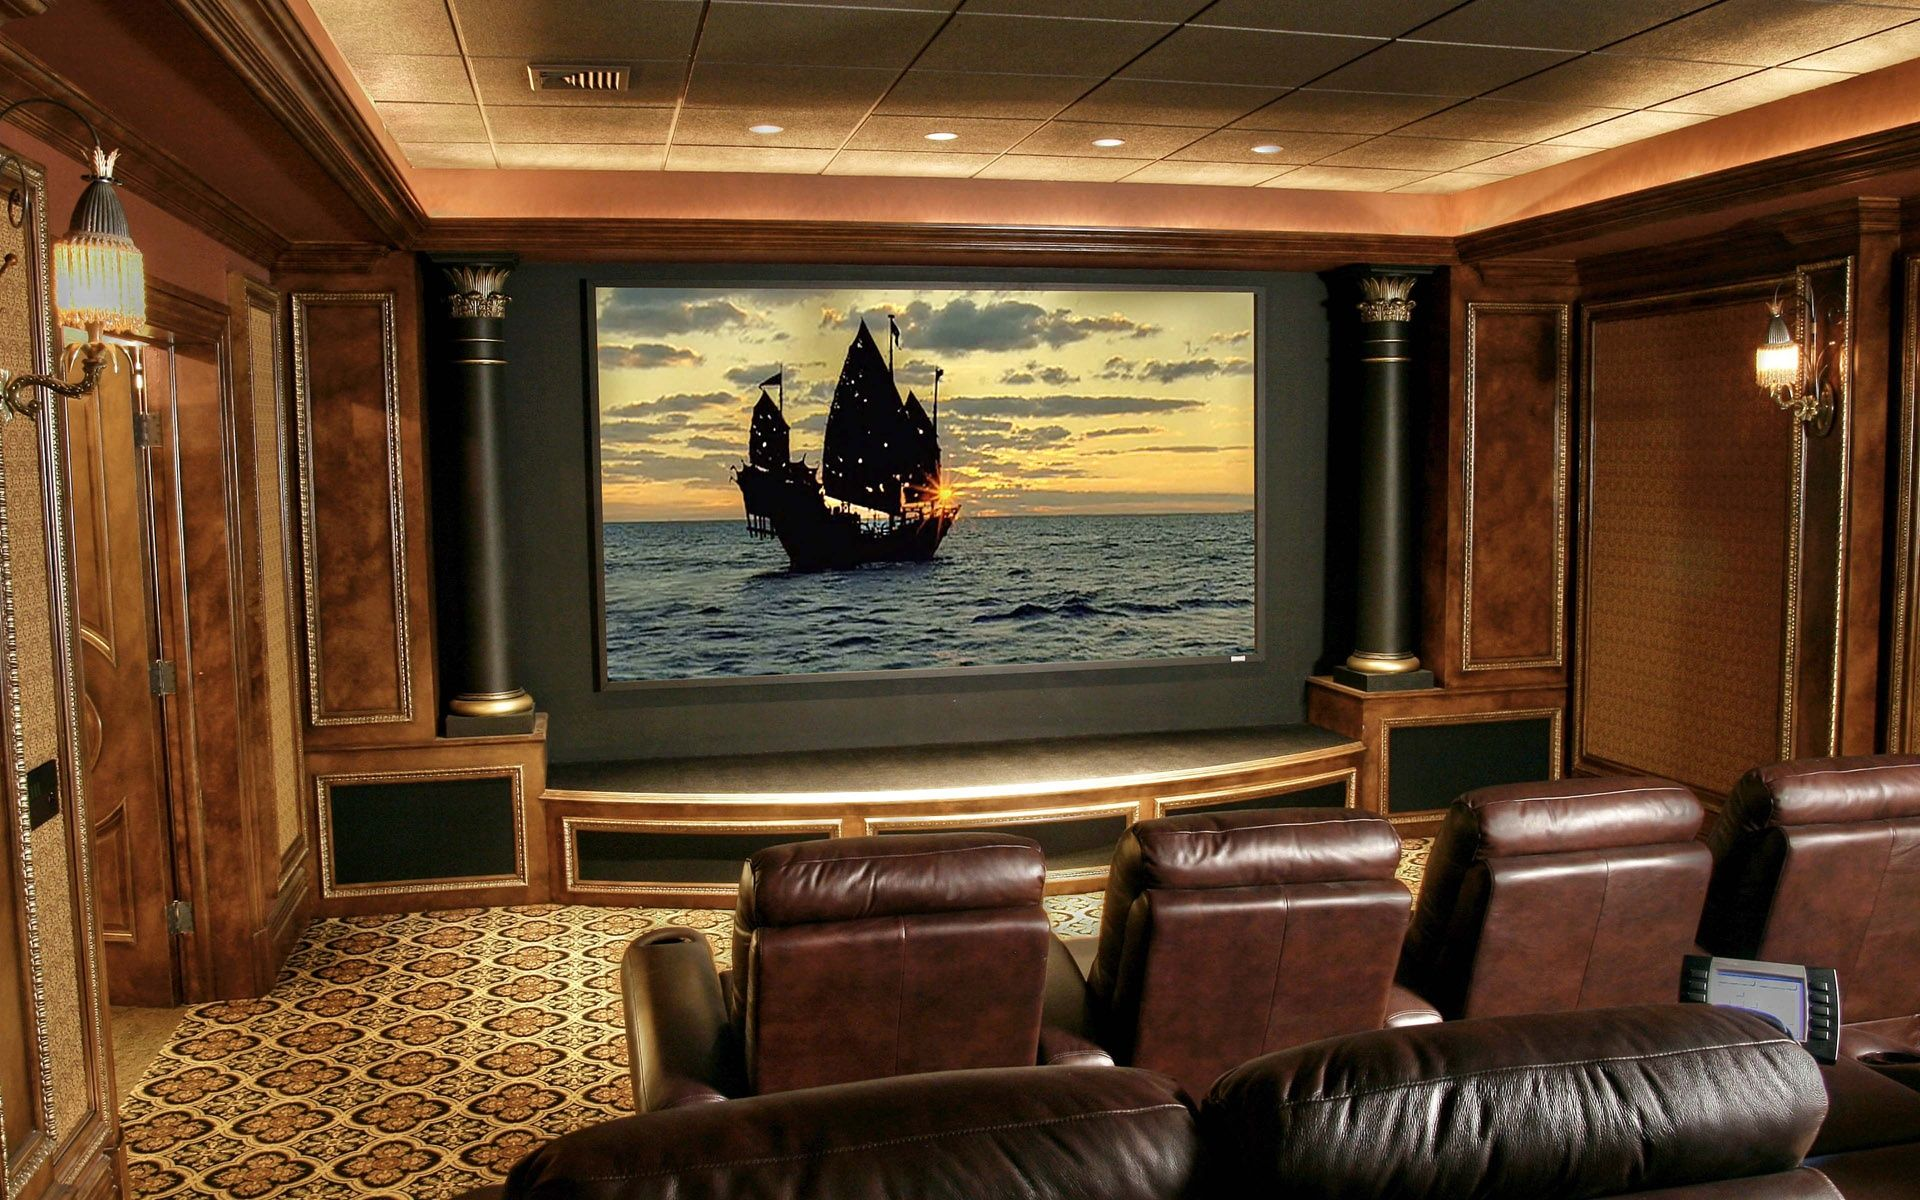 best images about home theater room inspiration on pinterest home theatre rooms designs - Home Theater Room Design Ideas